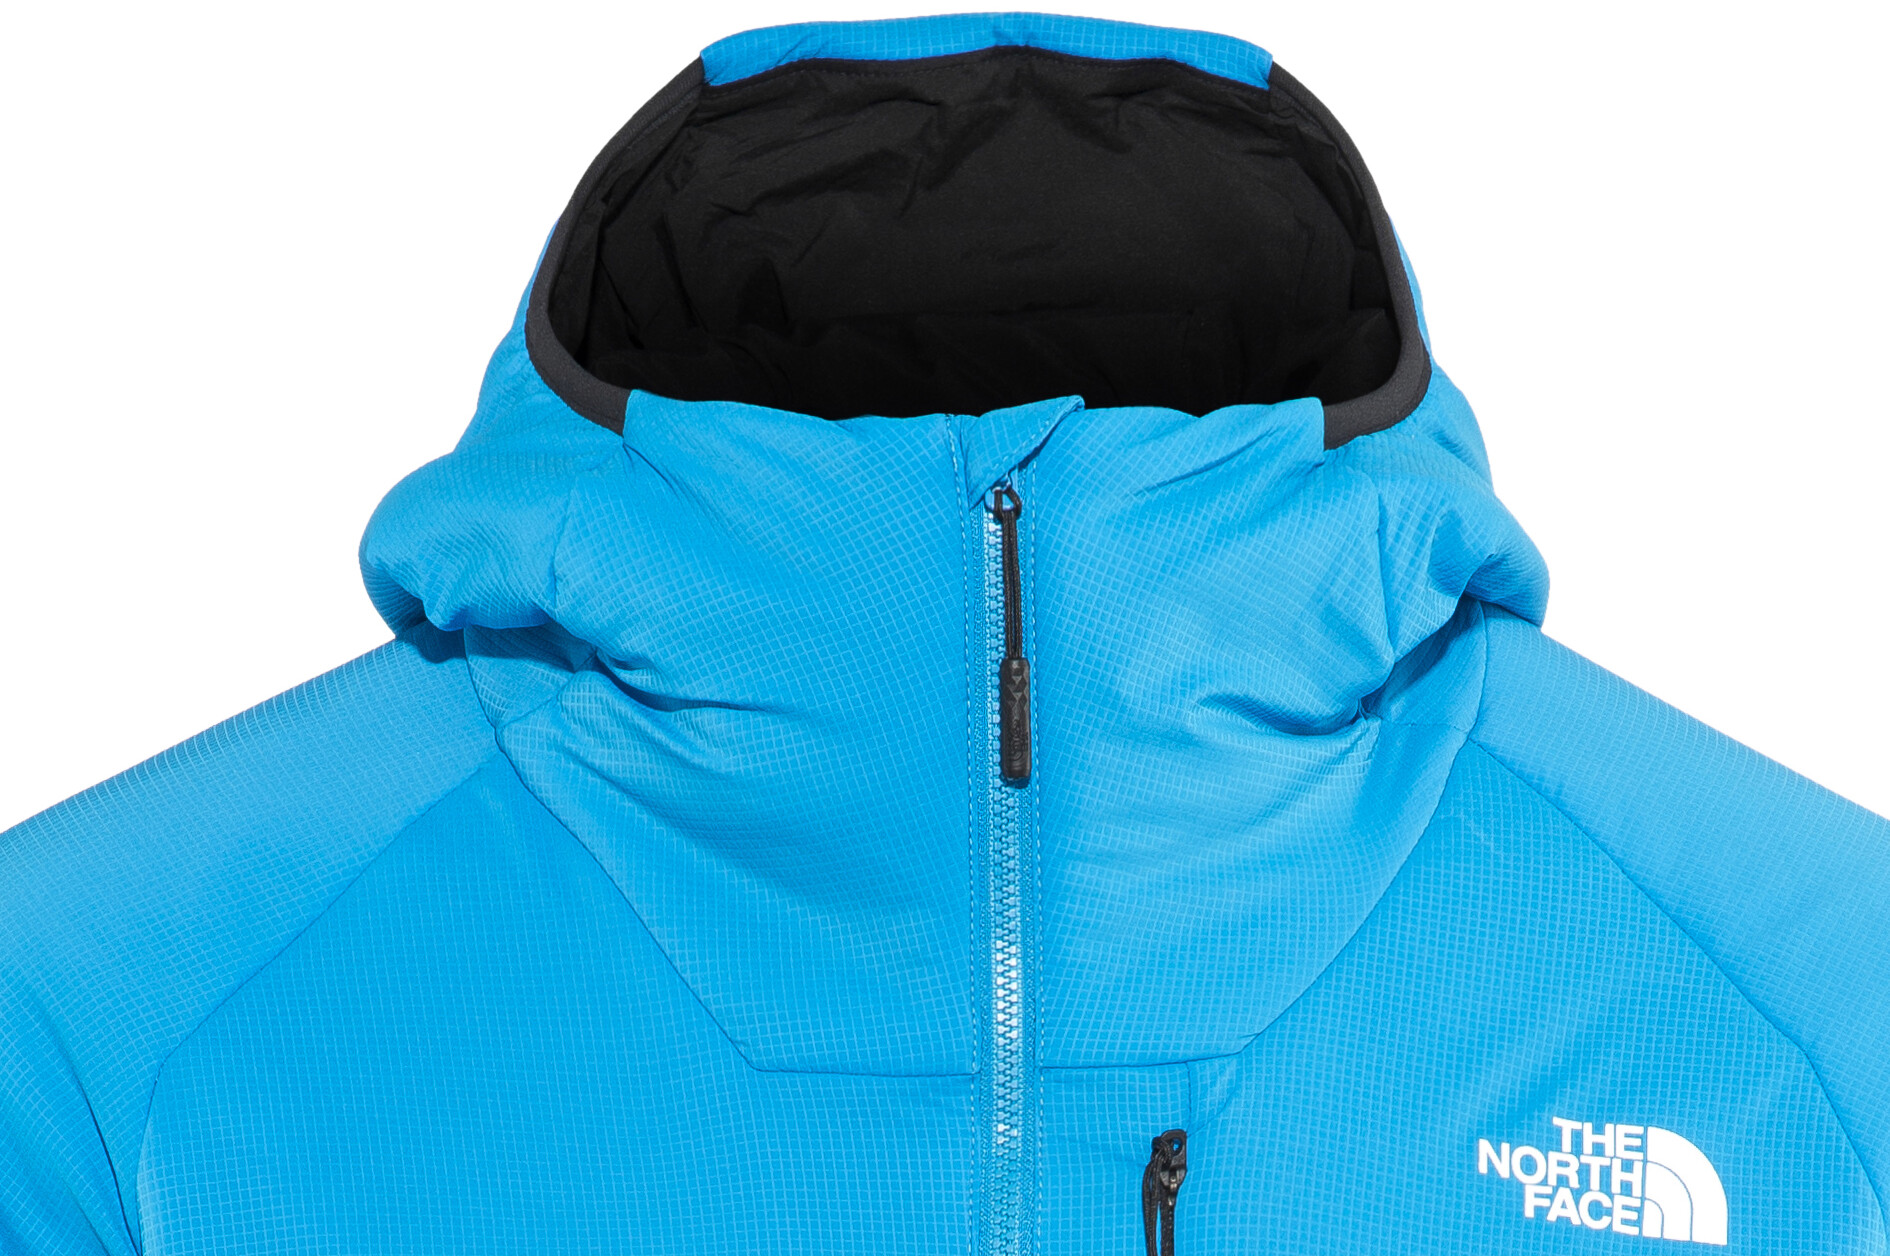 2e7abb1d606 The North Face Ventrix Jacket Men blue black at Addnature.co.uk